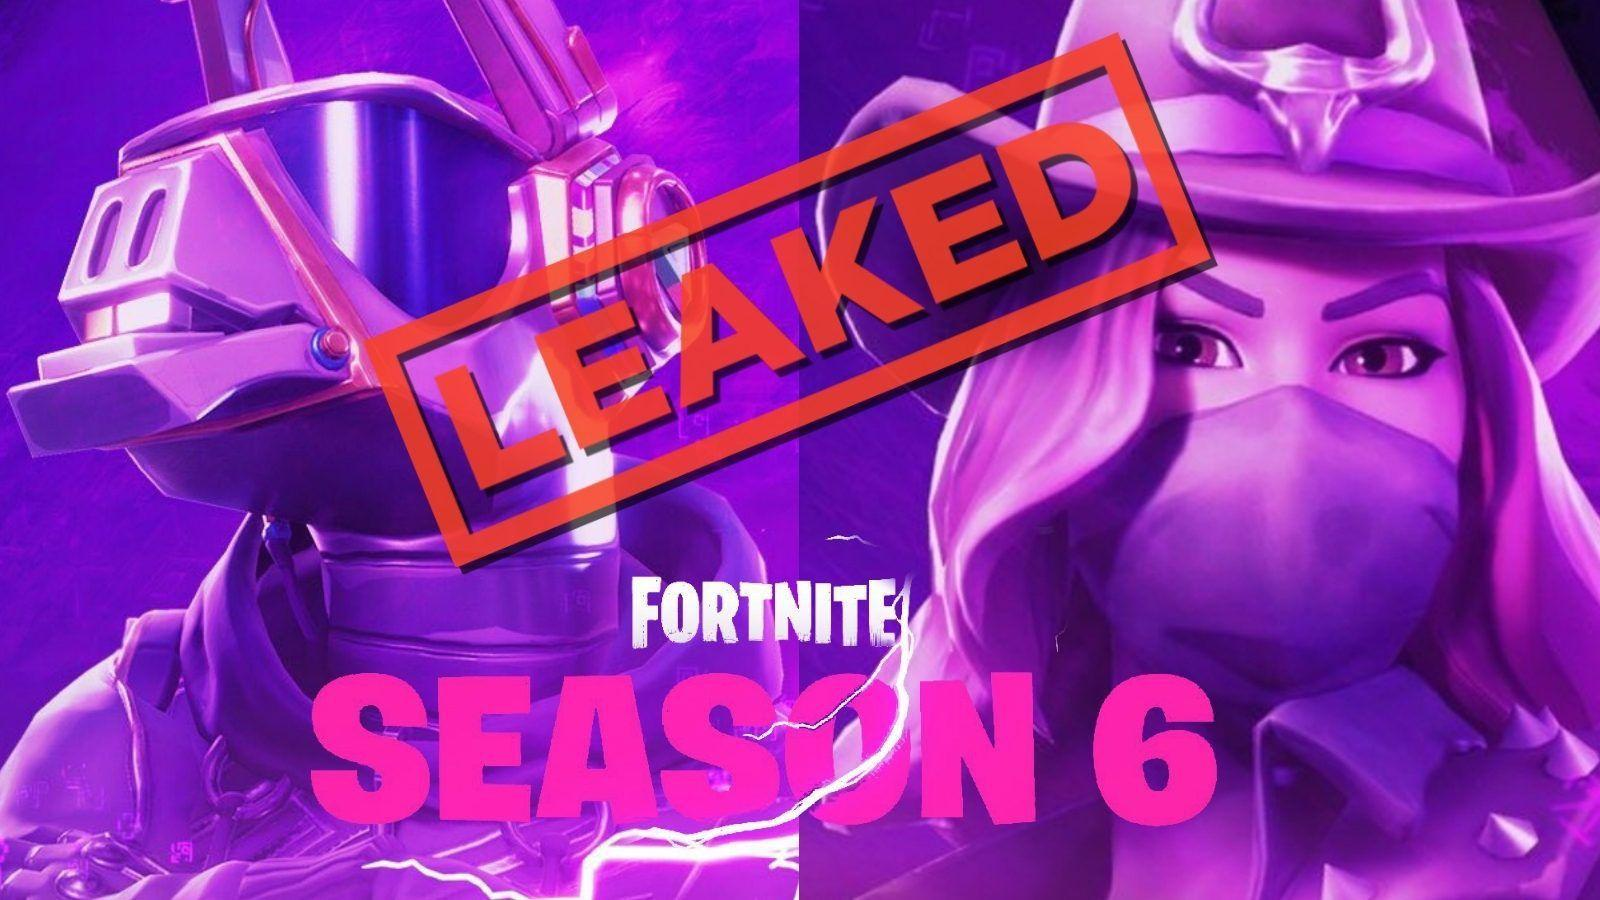 Fortnite Pets Season 6 Logo Wallpaper Fortnite Season 6 Six Leak ...